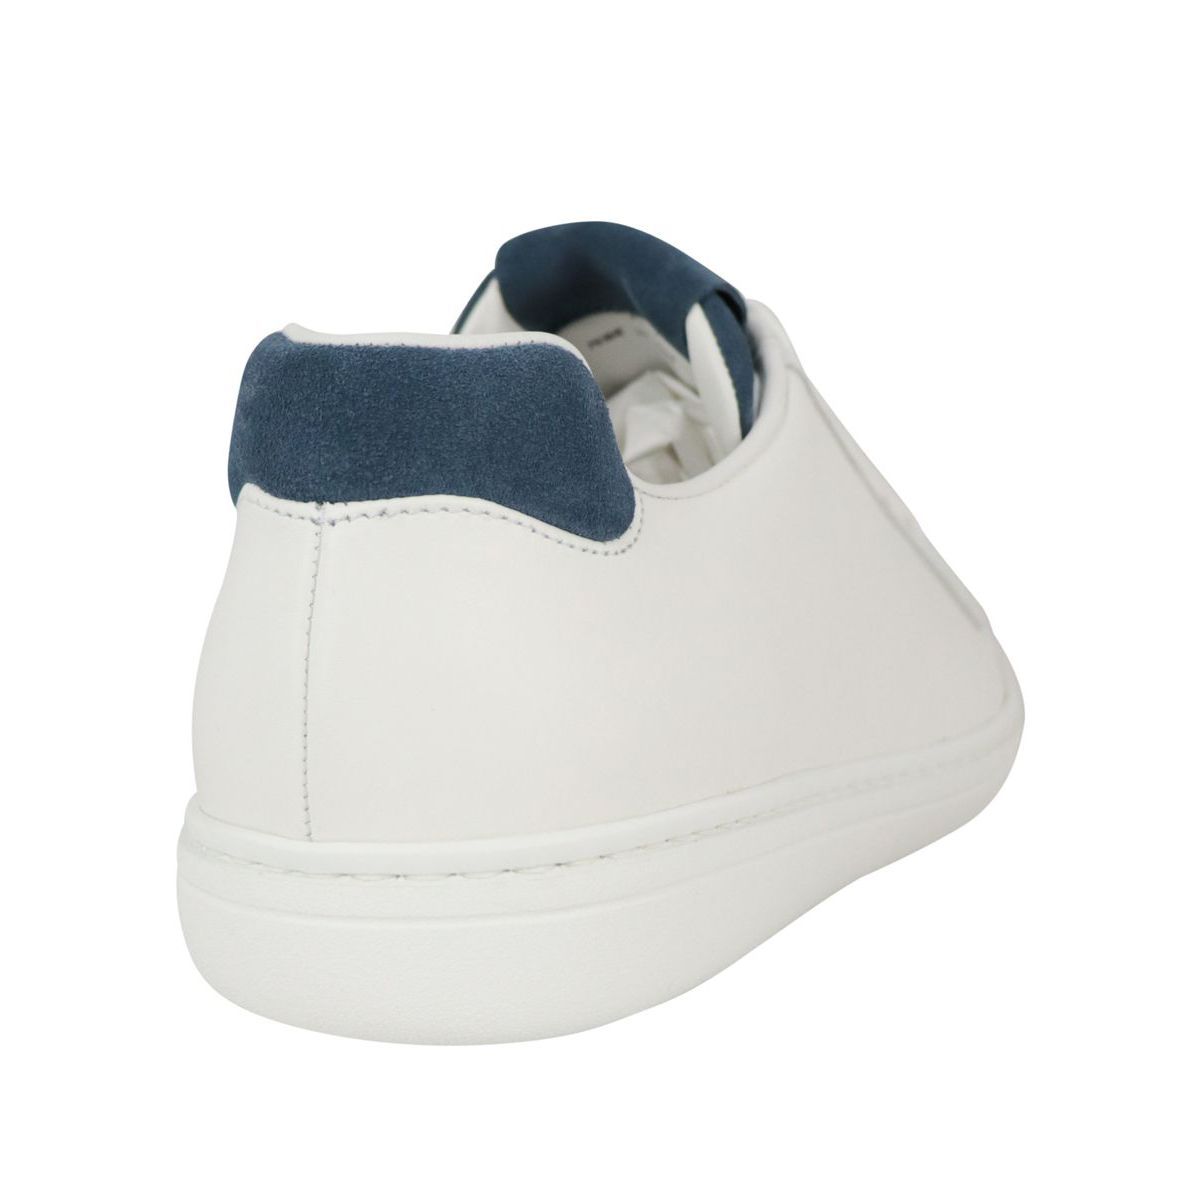 Boland Plus sneakers in leather with suede tongue White / azz. Church's